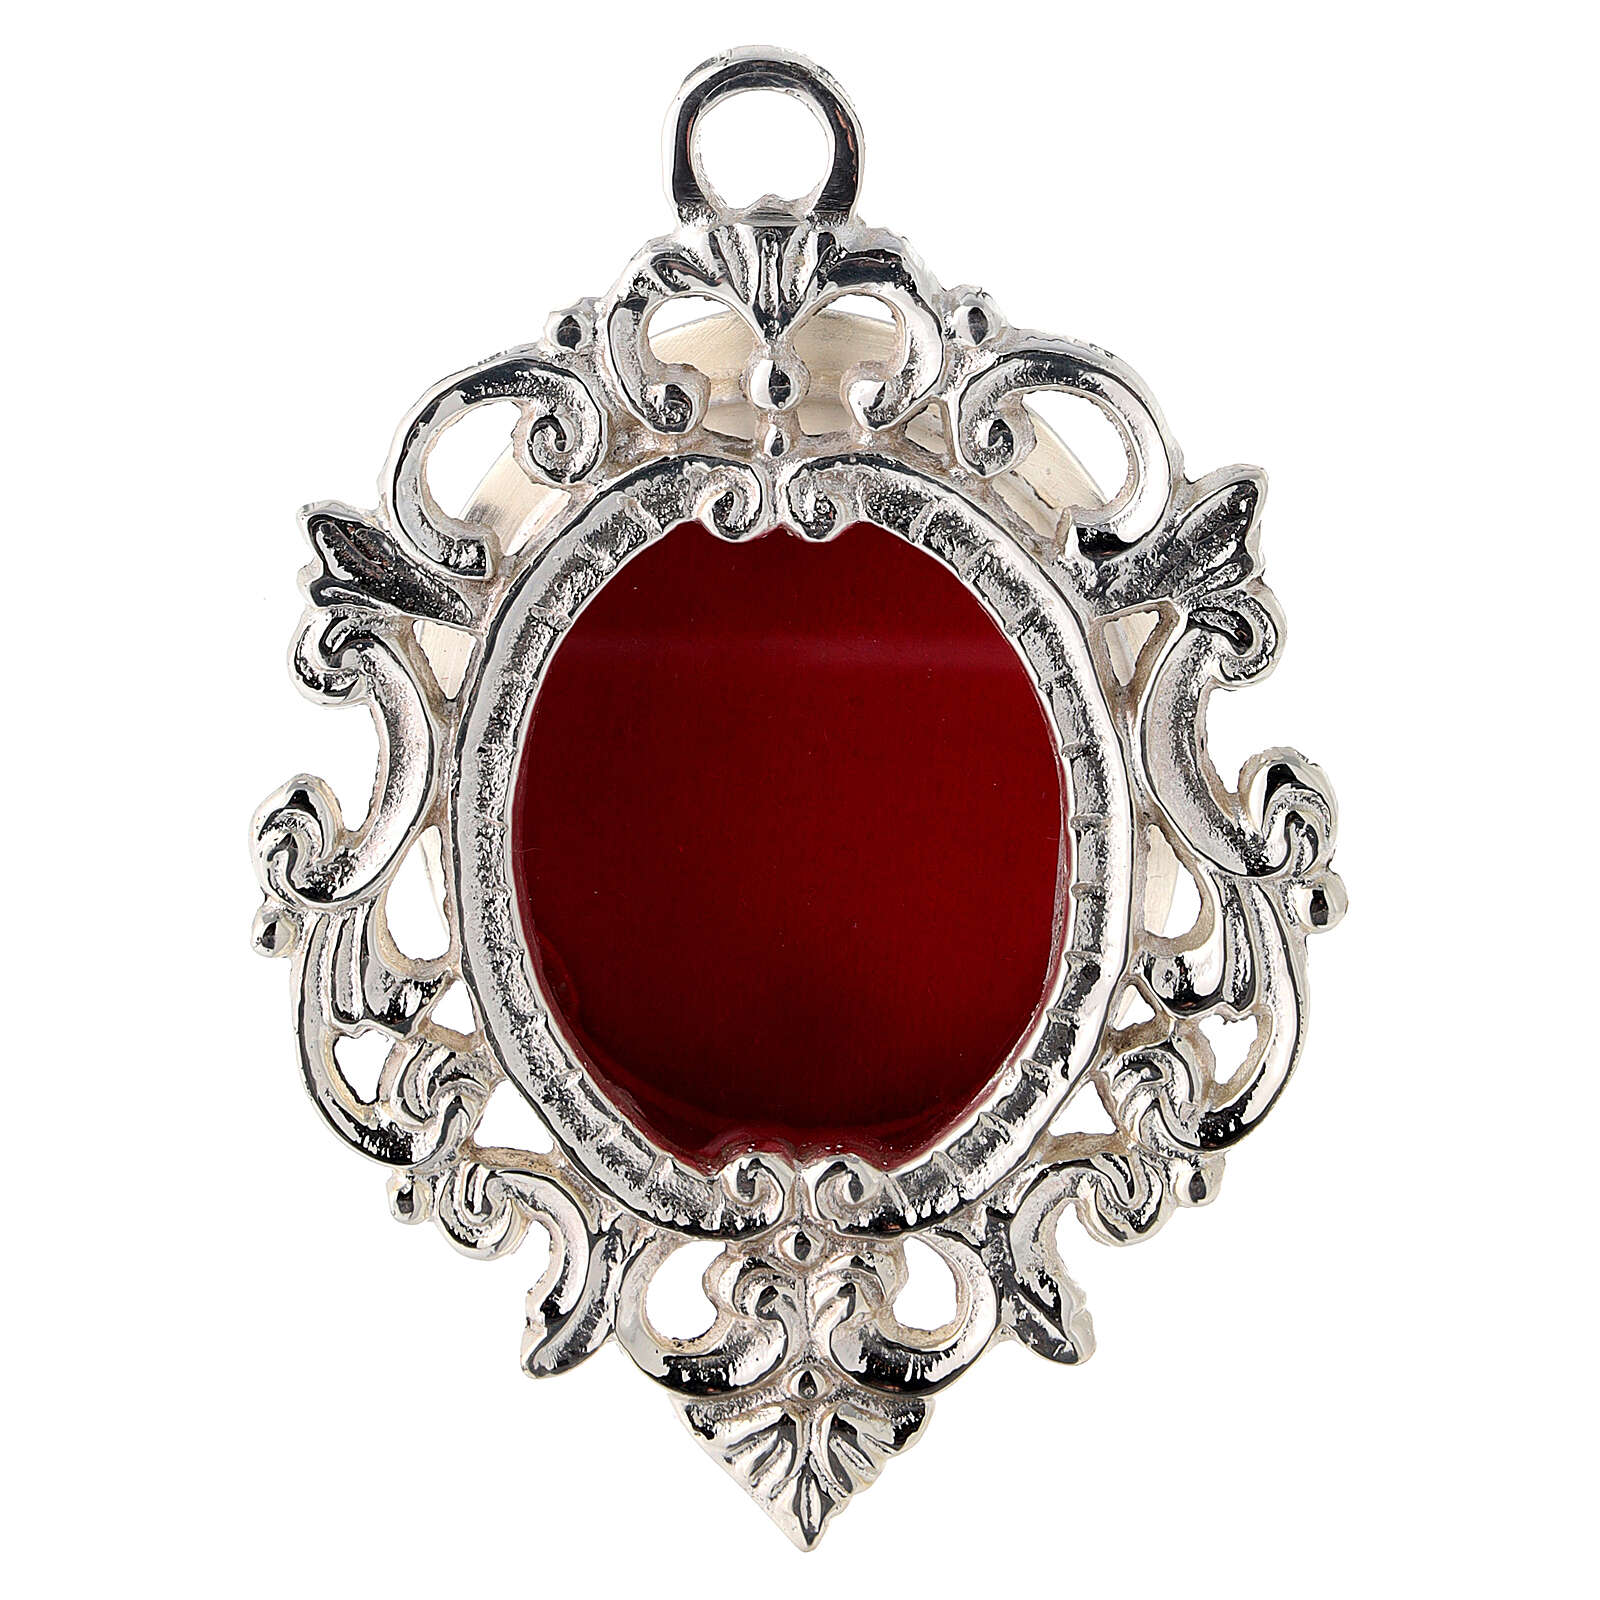 Wall-mounted baroque reliquary in silver-plated brass h 4 1/4 in 4